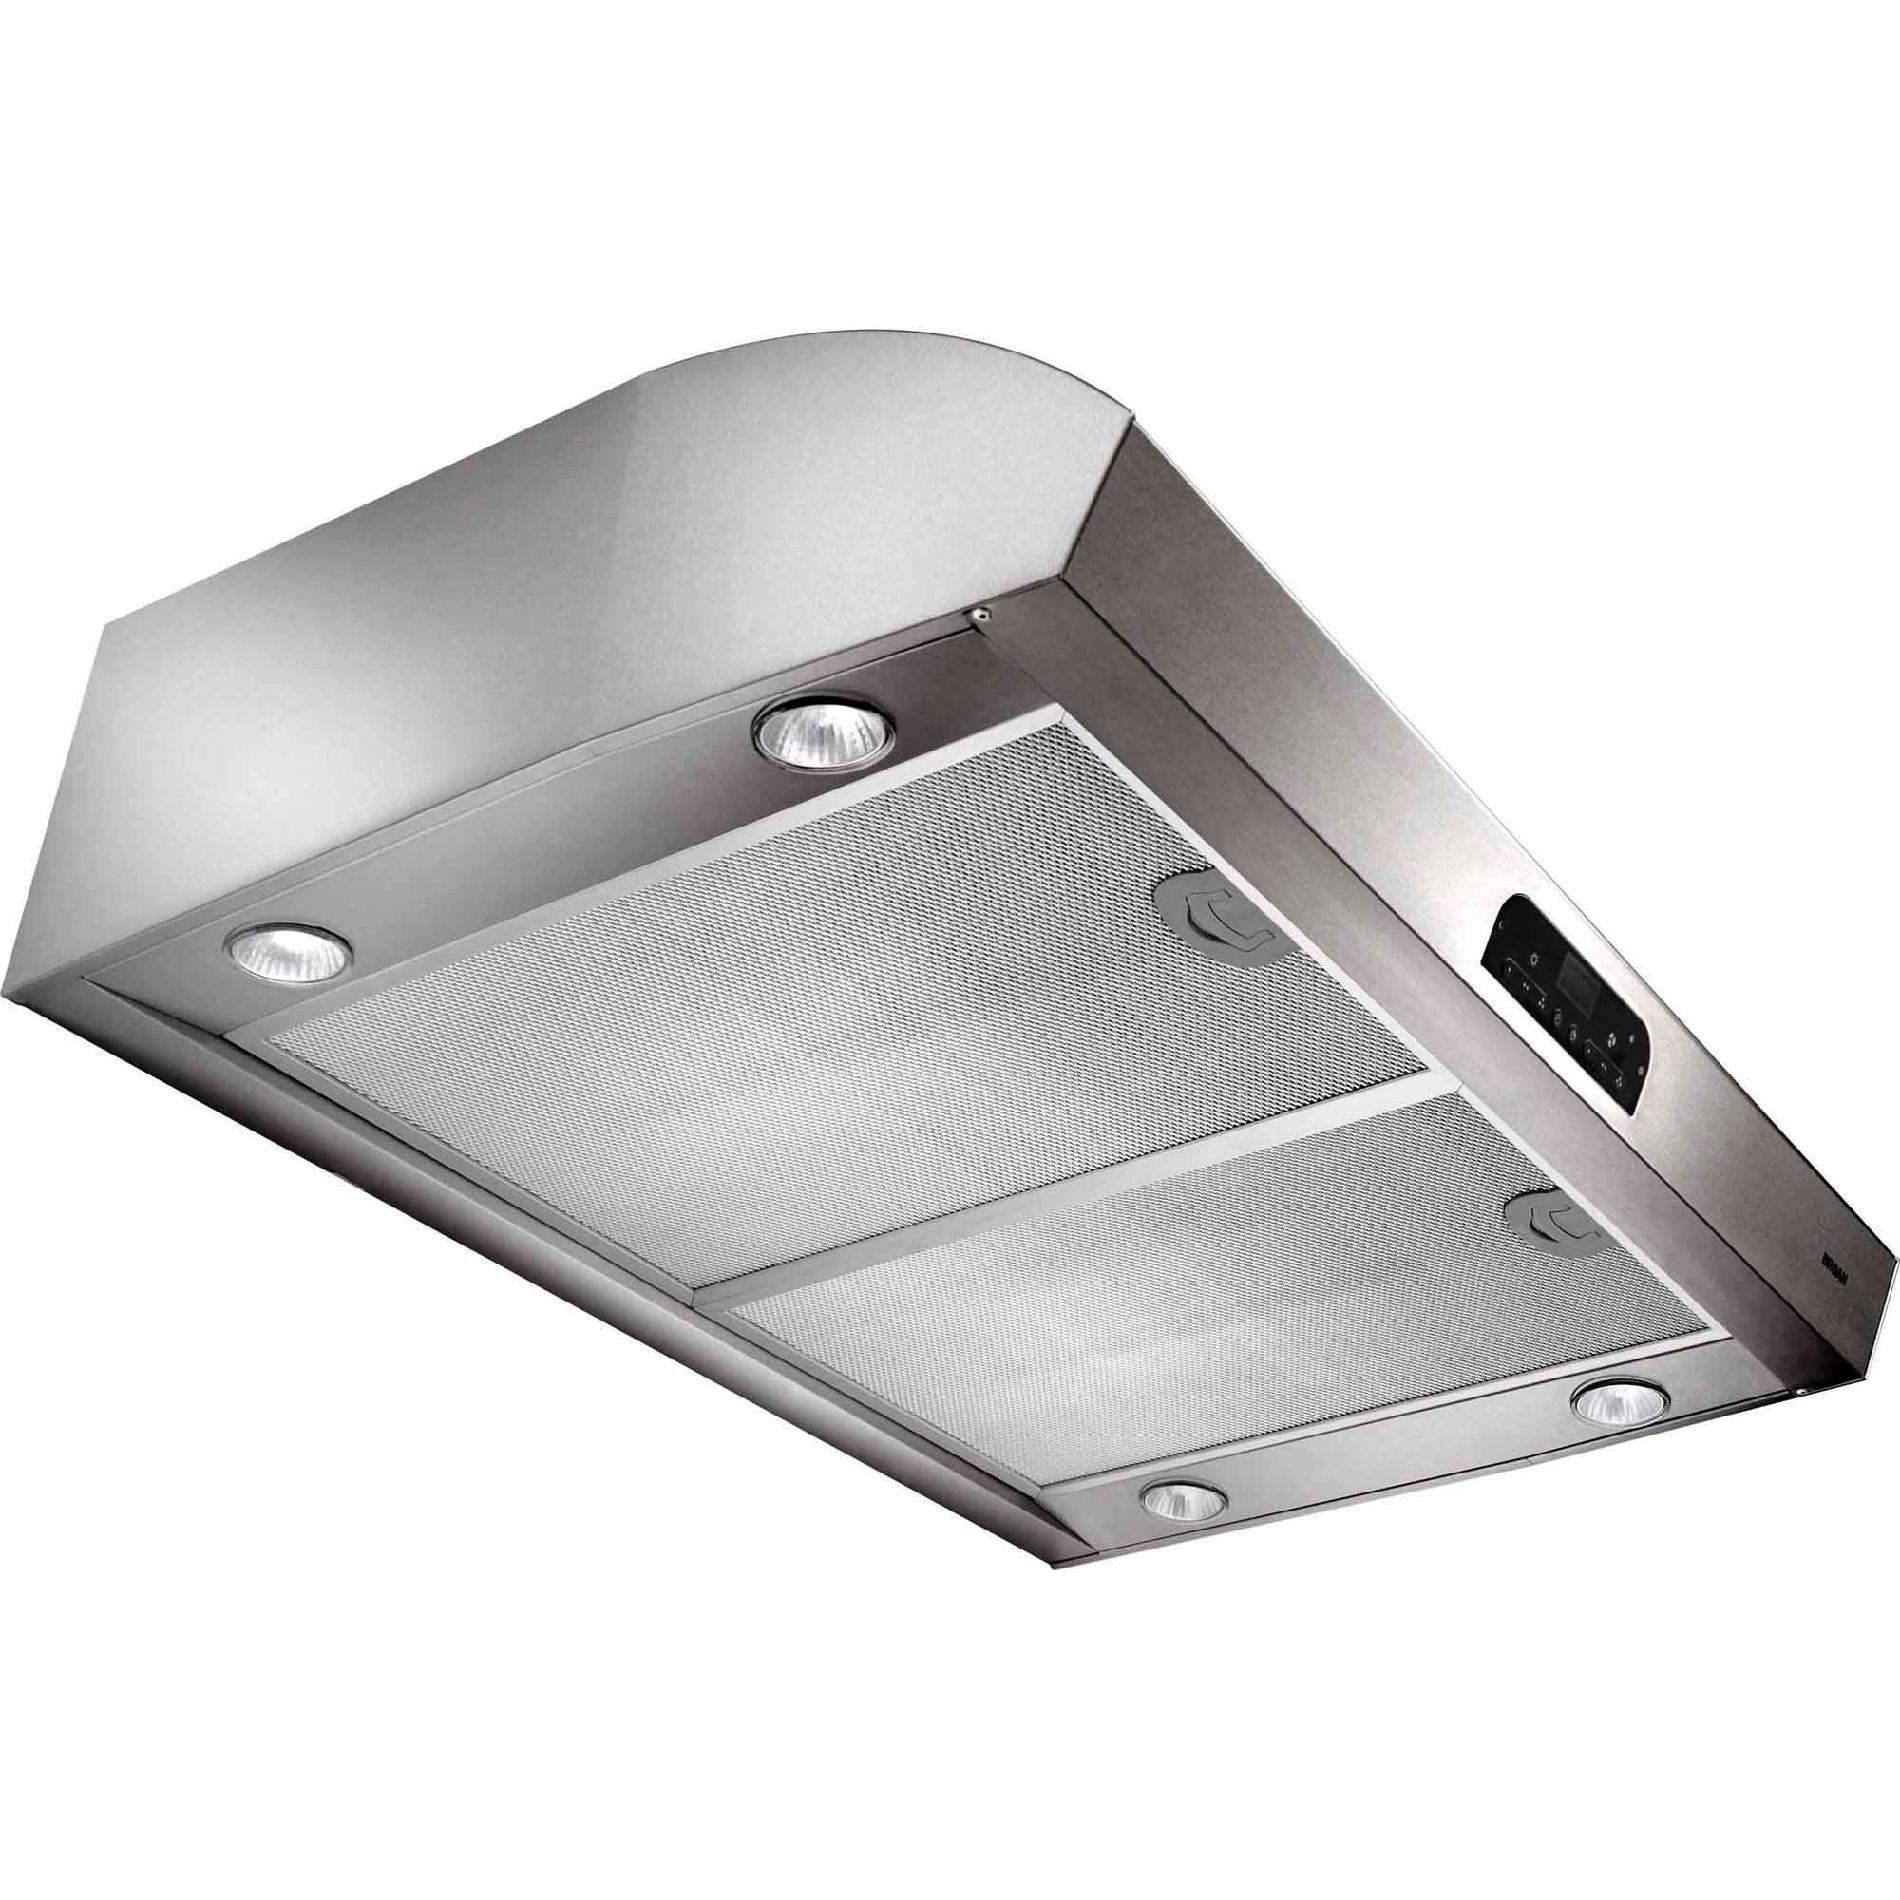 "Broan QP342SS 42"" 450 CFM Under Cabinet Range Hood - Stainless Steel"